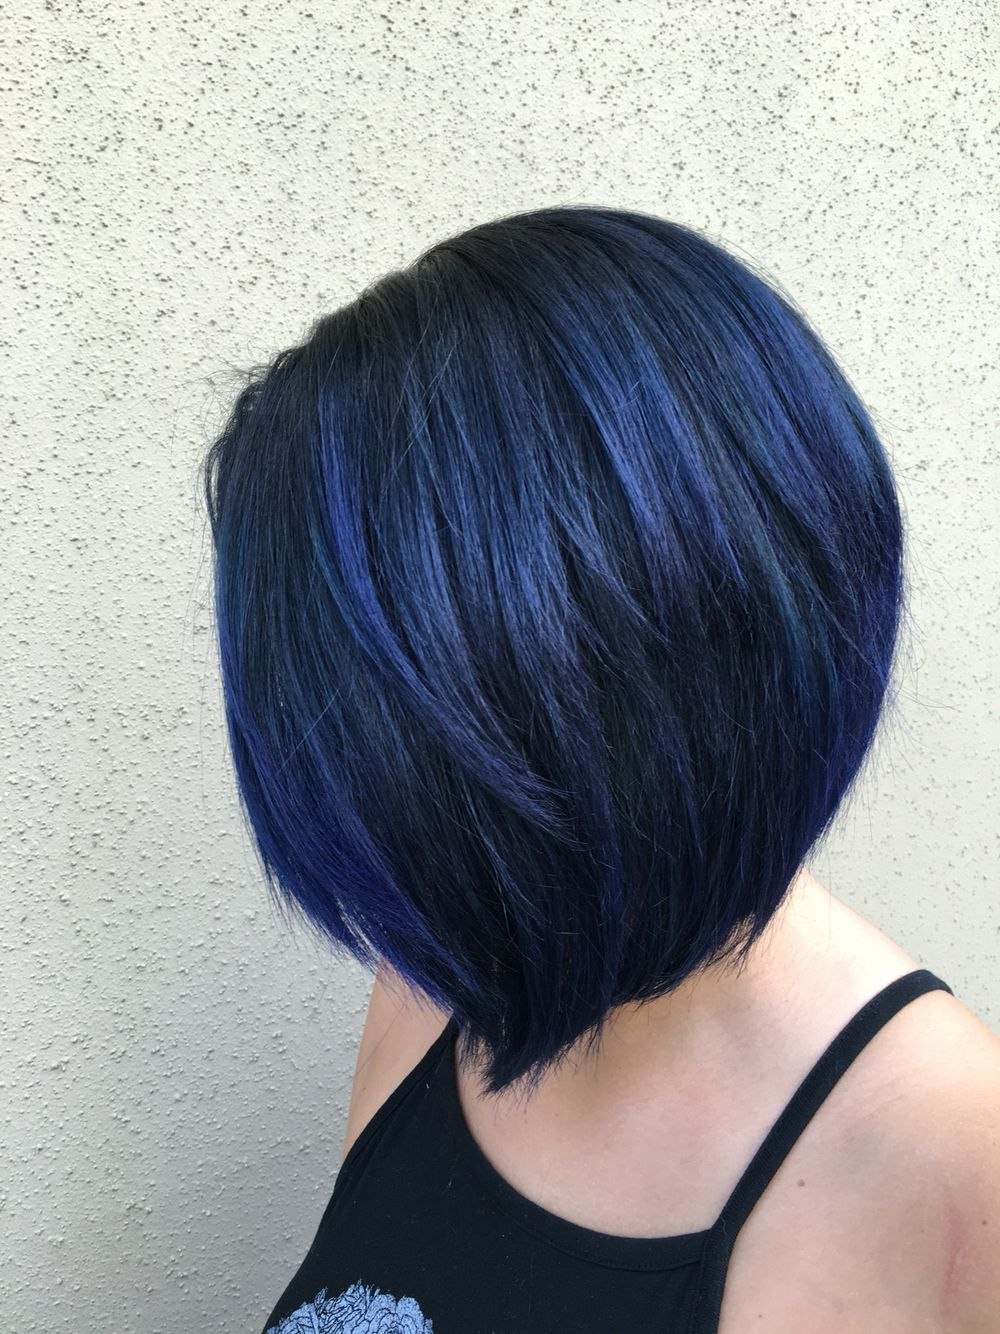 pin by victoriakenny on short hairstyles | short blue hair